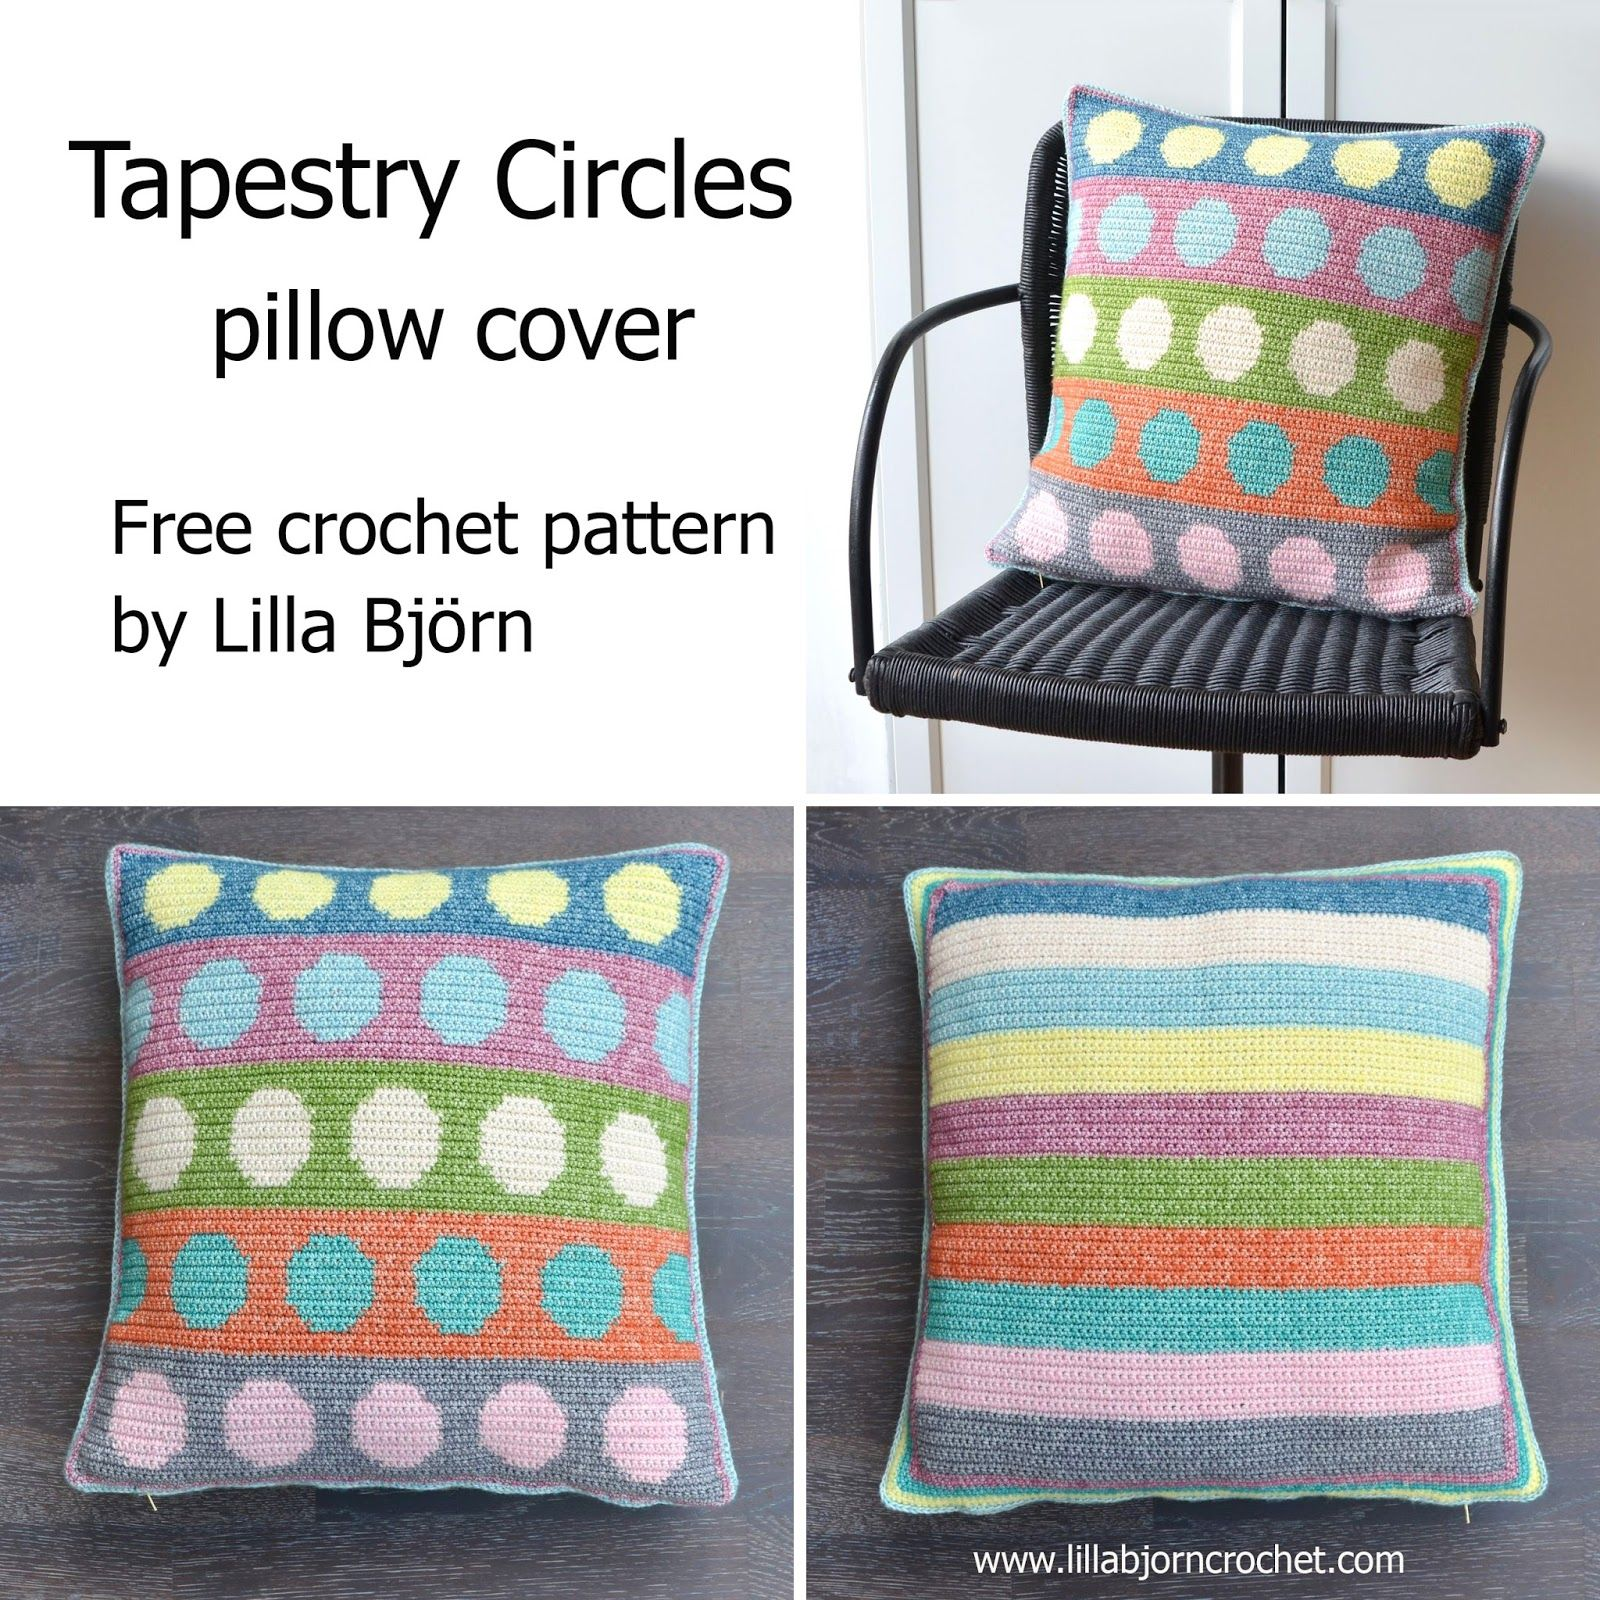 Crochet pillow cover with colorful circles made in tapestry crochet ...